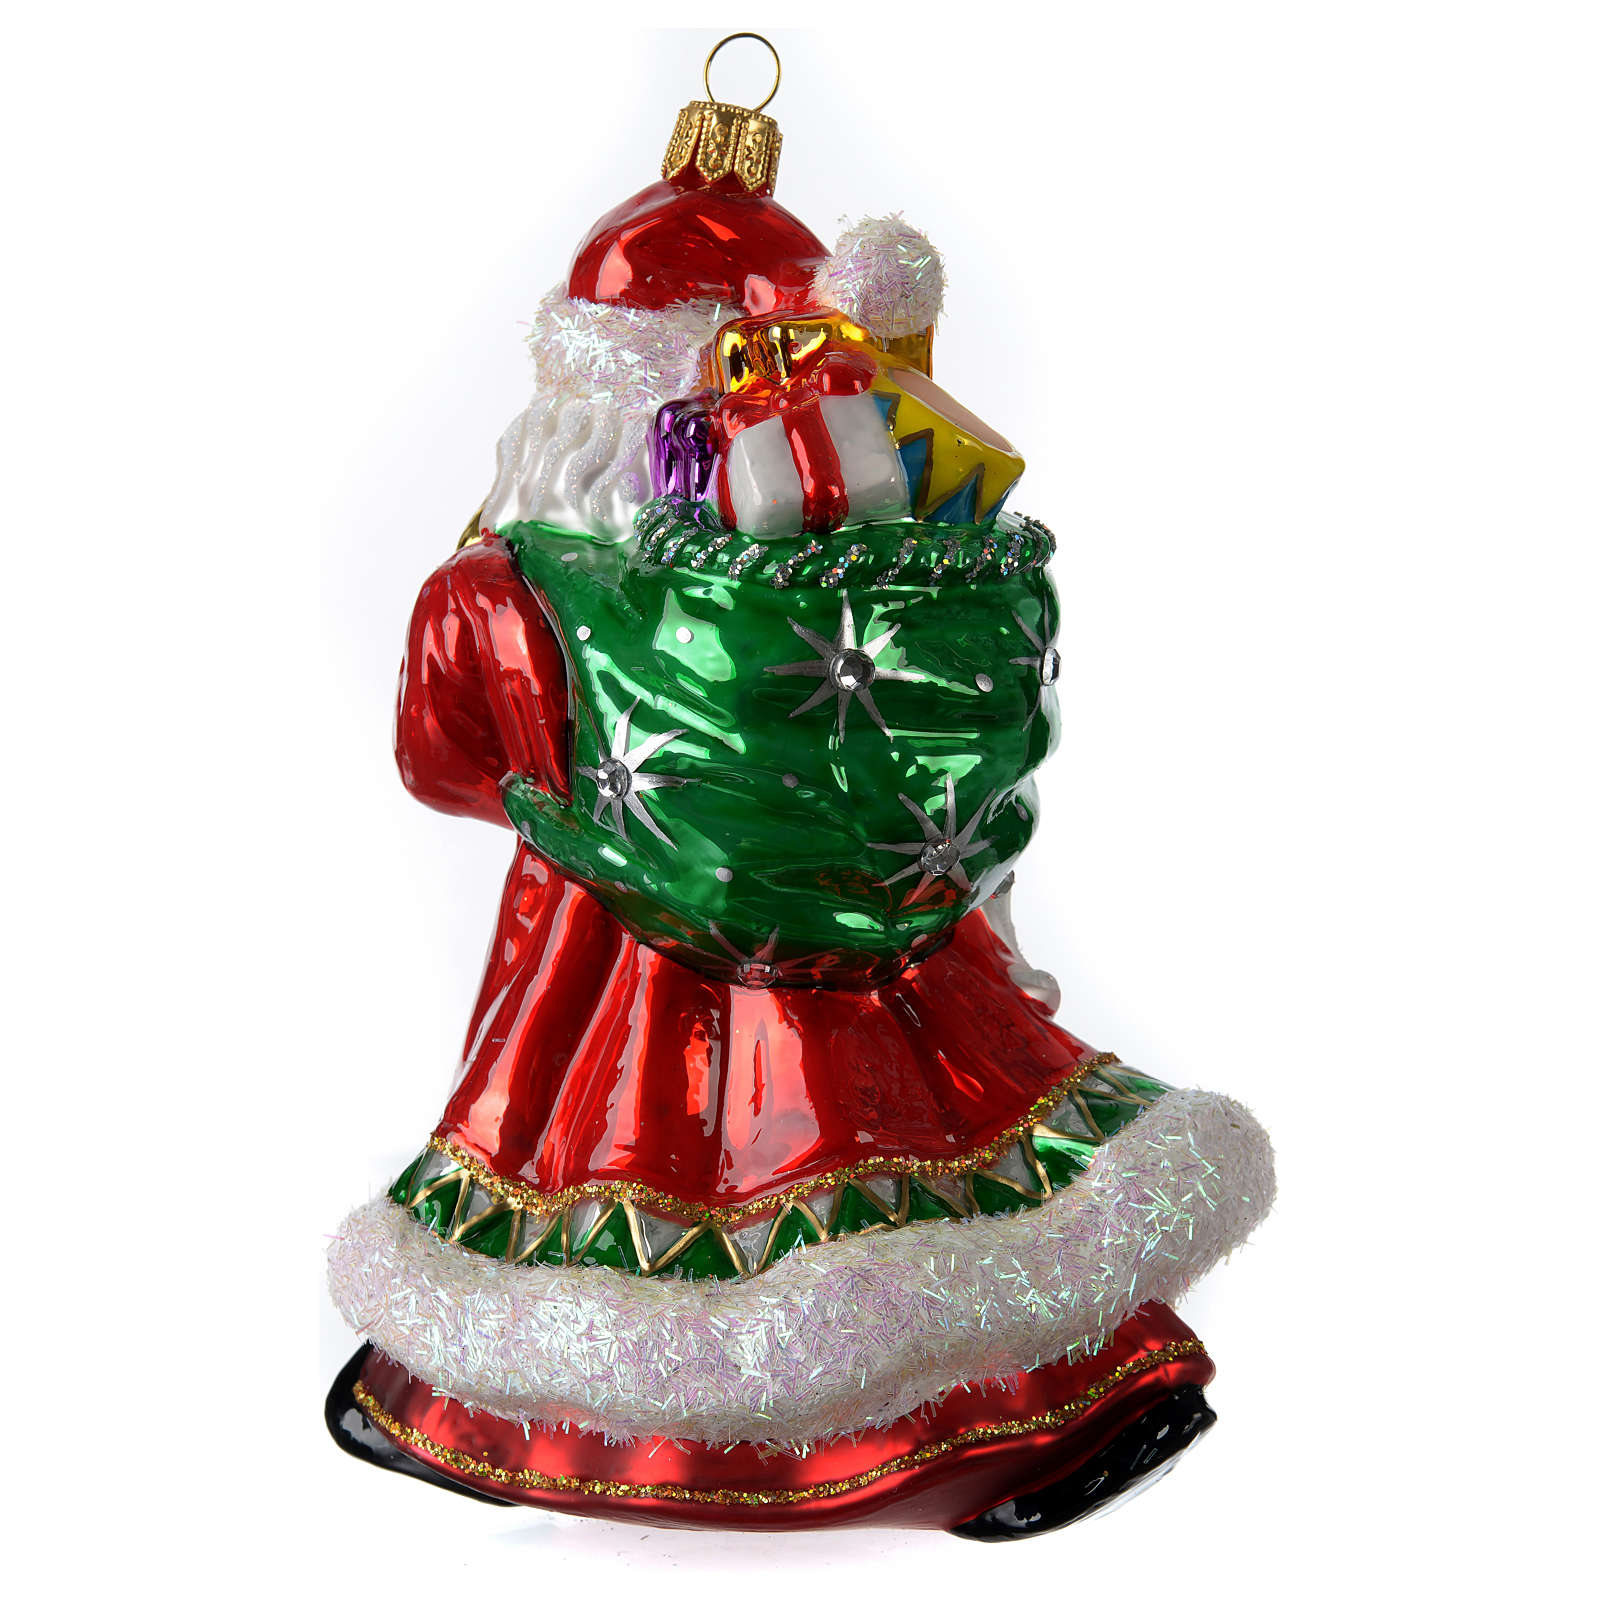 Blown glass Christmas ornament, Santa Claus with gifts 4